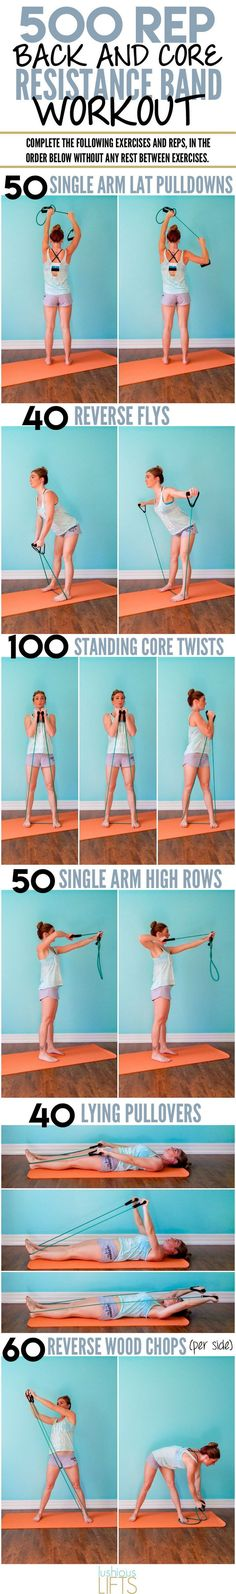 500 rep back and core resistance band workout - Fitness Fitness Workouts, Lower Ab Workouts, Sport Fitness, Pilates Workout, At Home Workouts, Fitness Tips, Fitness Motivation, Health Fitness, Fitness Plan